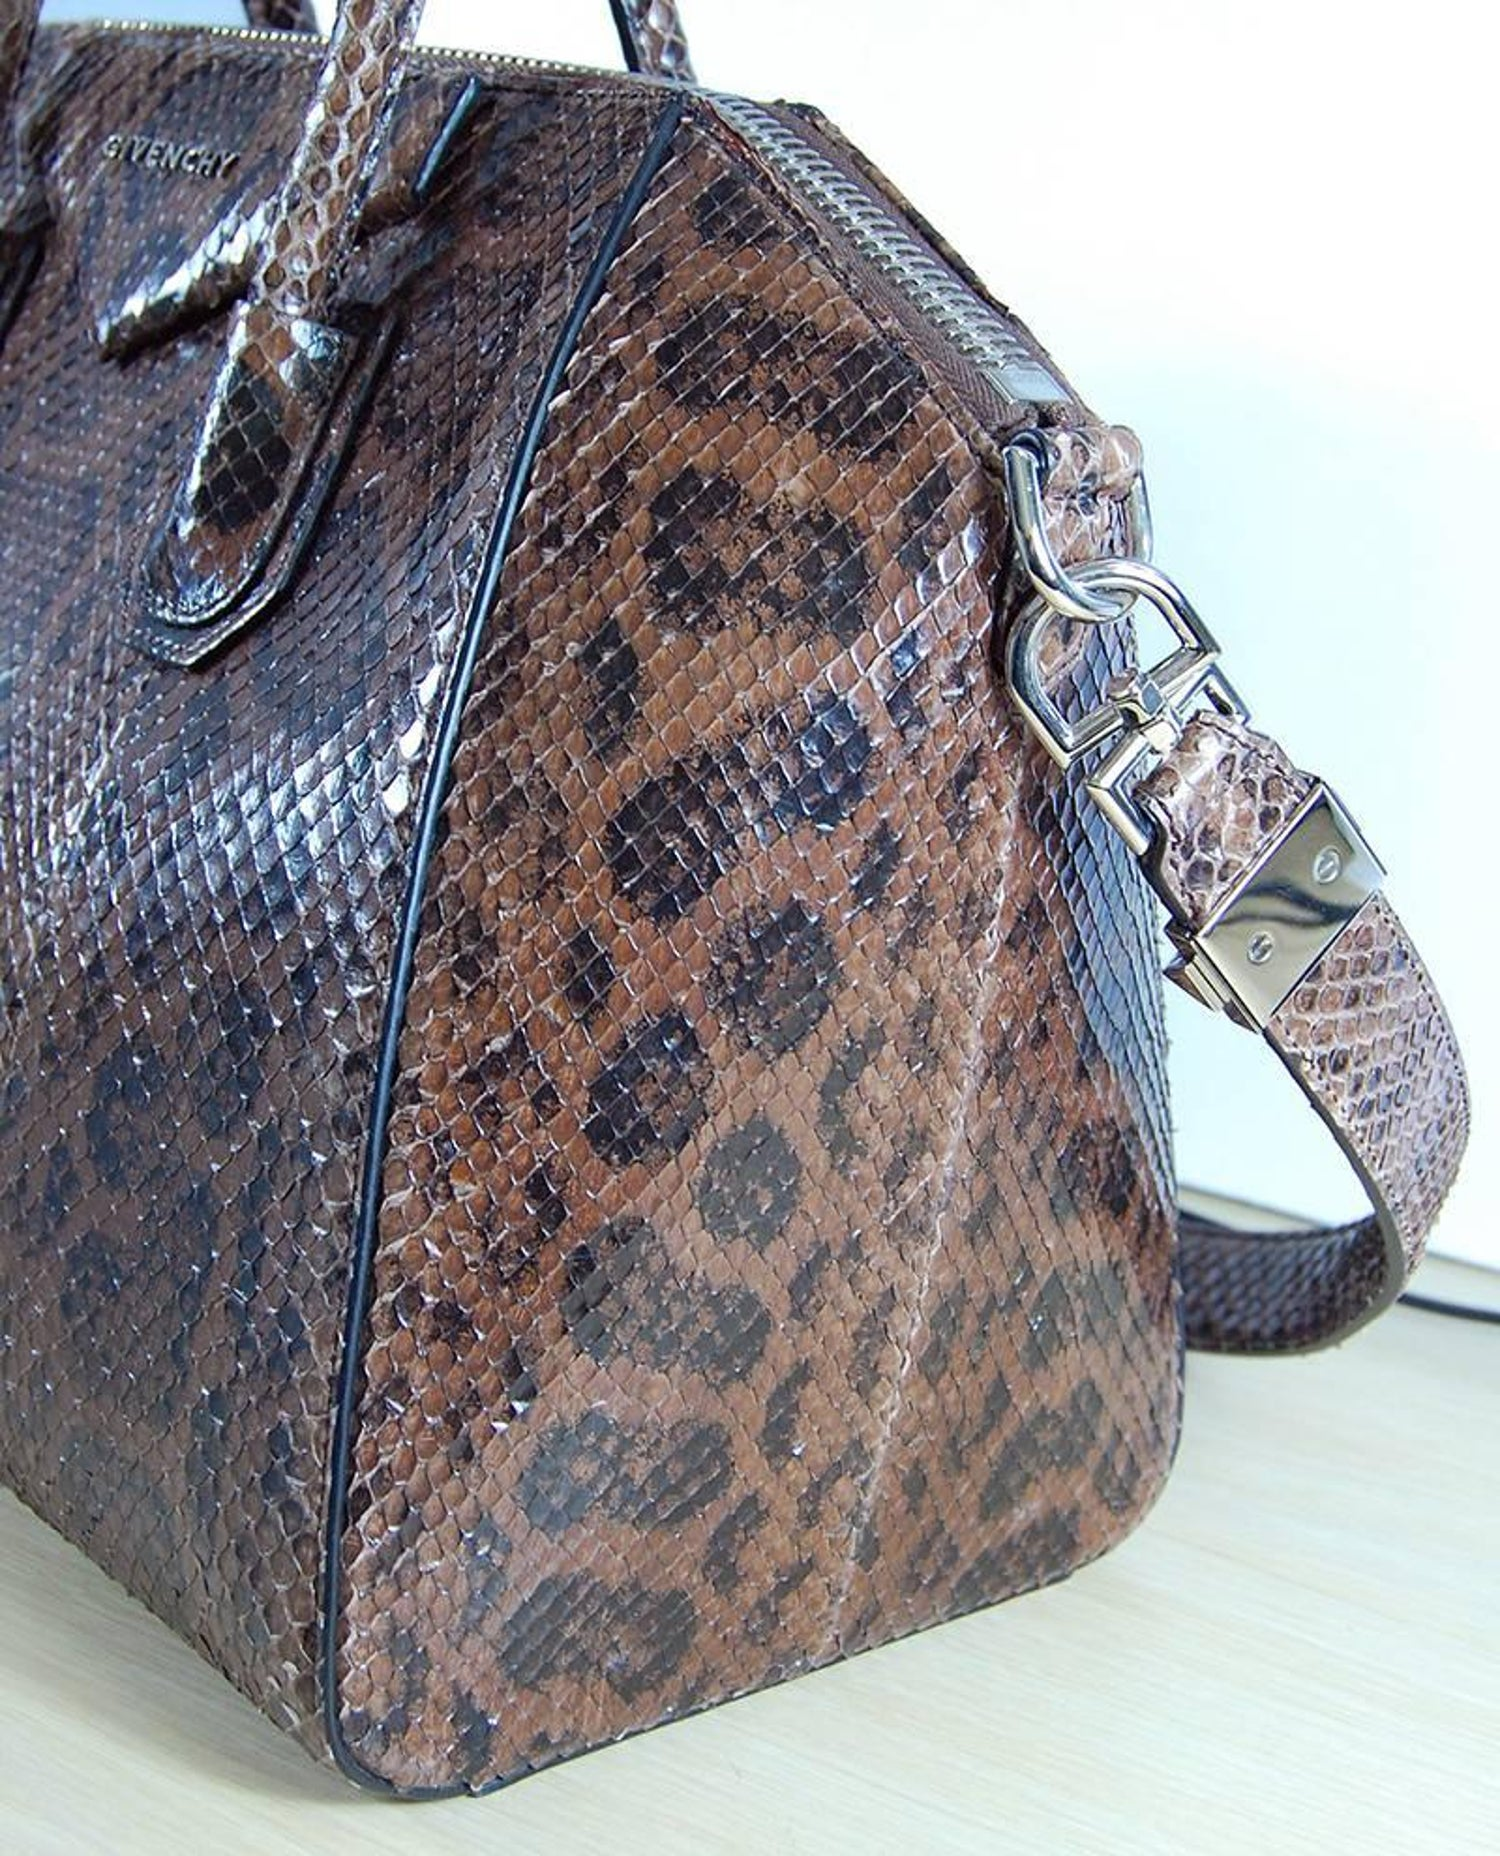 0c099dc21cc8 Givenchy Brown Python Antigona Medium Bag For Sale at 1stdibs